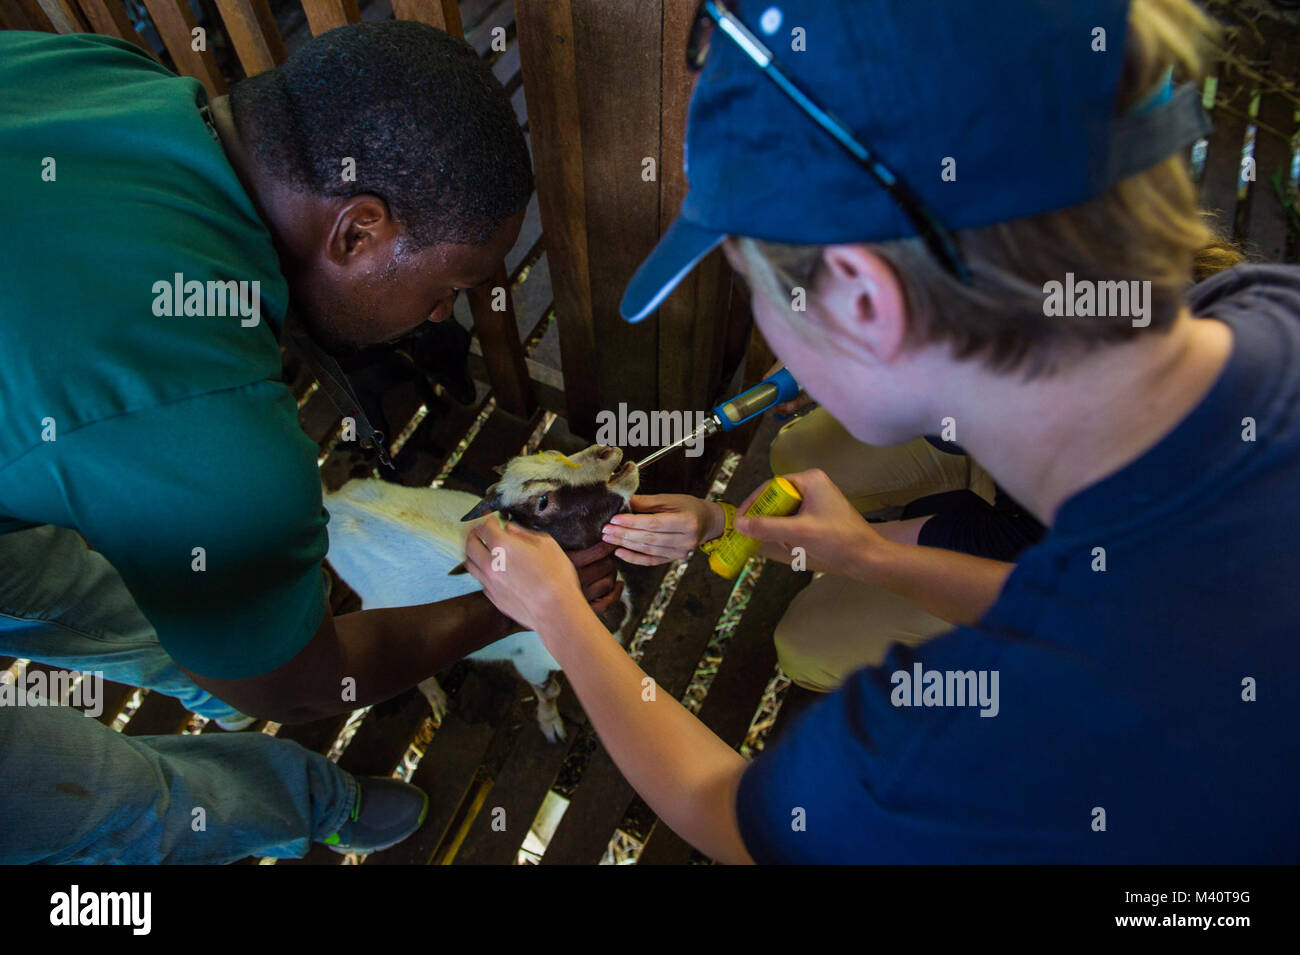 150805-N-NK134-012 ROSEAU, Dominica (Aug. 5, 2015) - Volunteers with the non-governmental organization (NGO) World - Stock Image